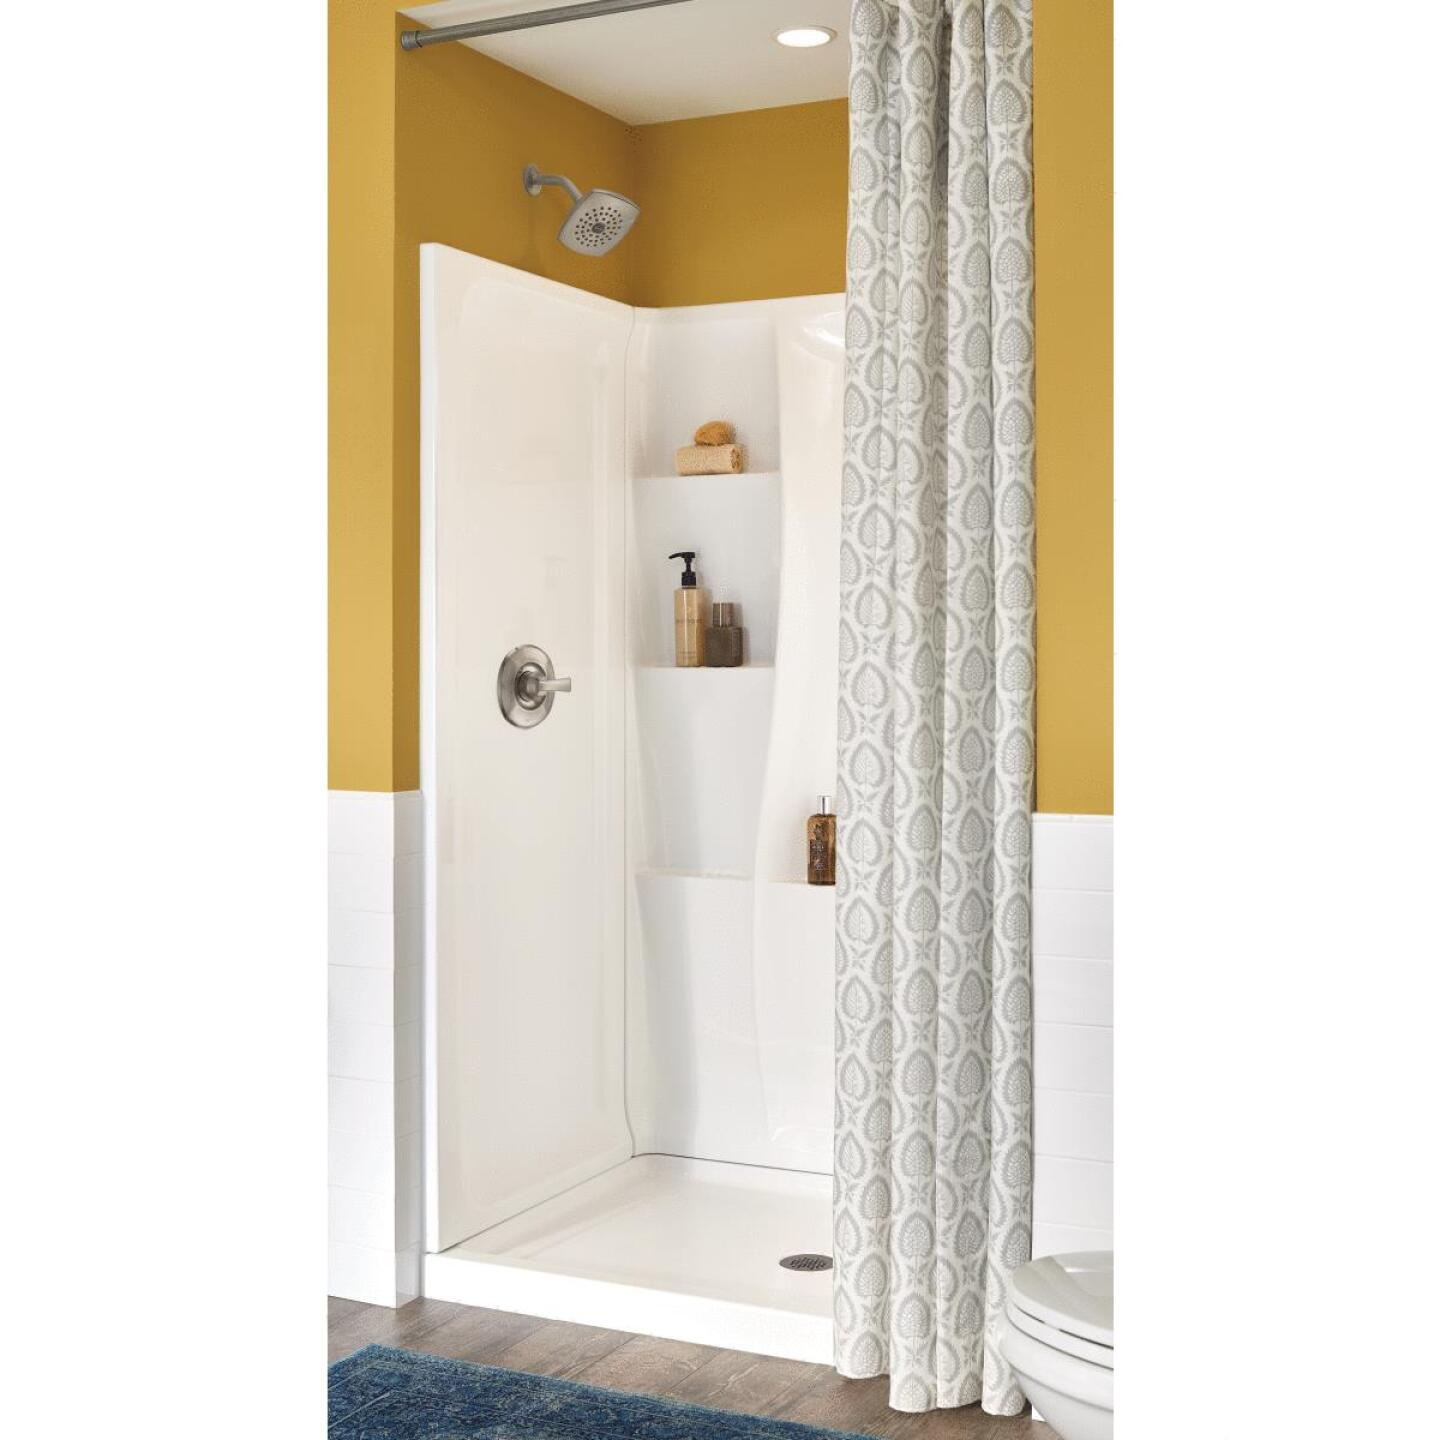 Delta Classic 400 3-Piece 48 In. L x 34 In. D Shower Wall Set in White Image 1